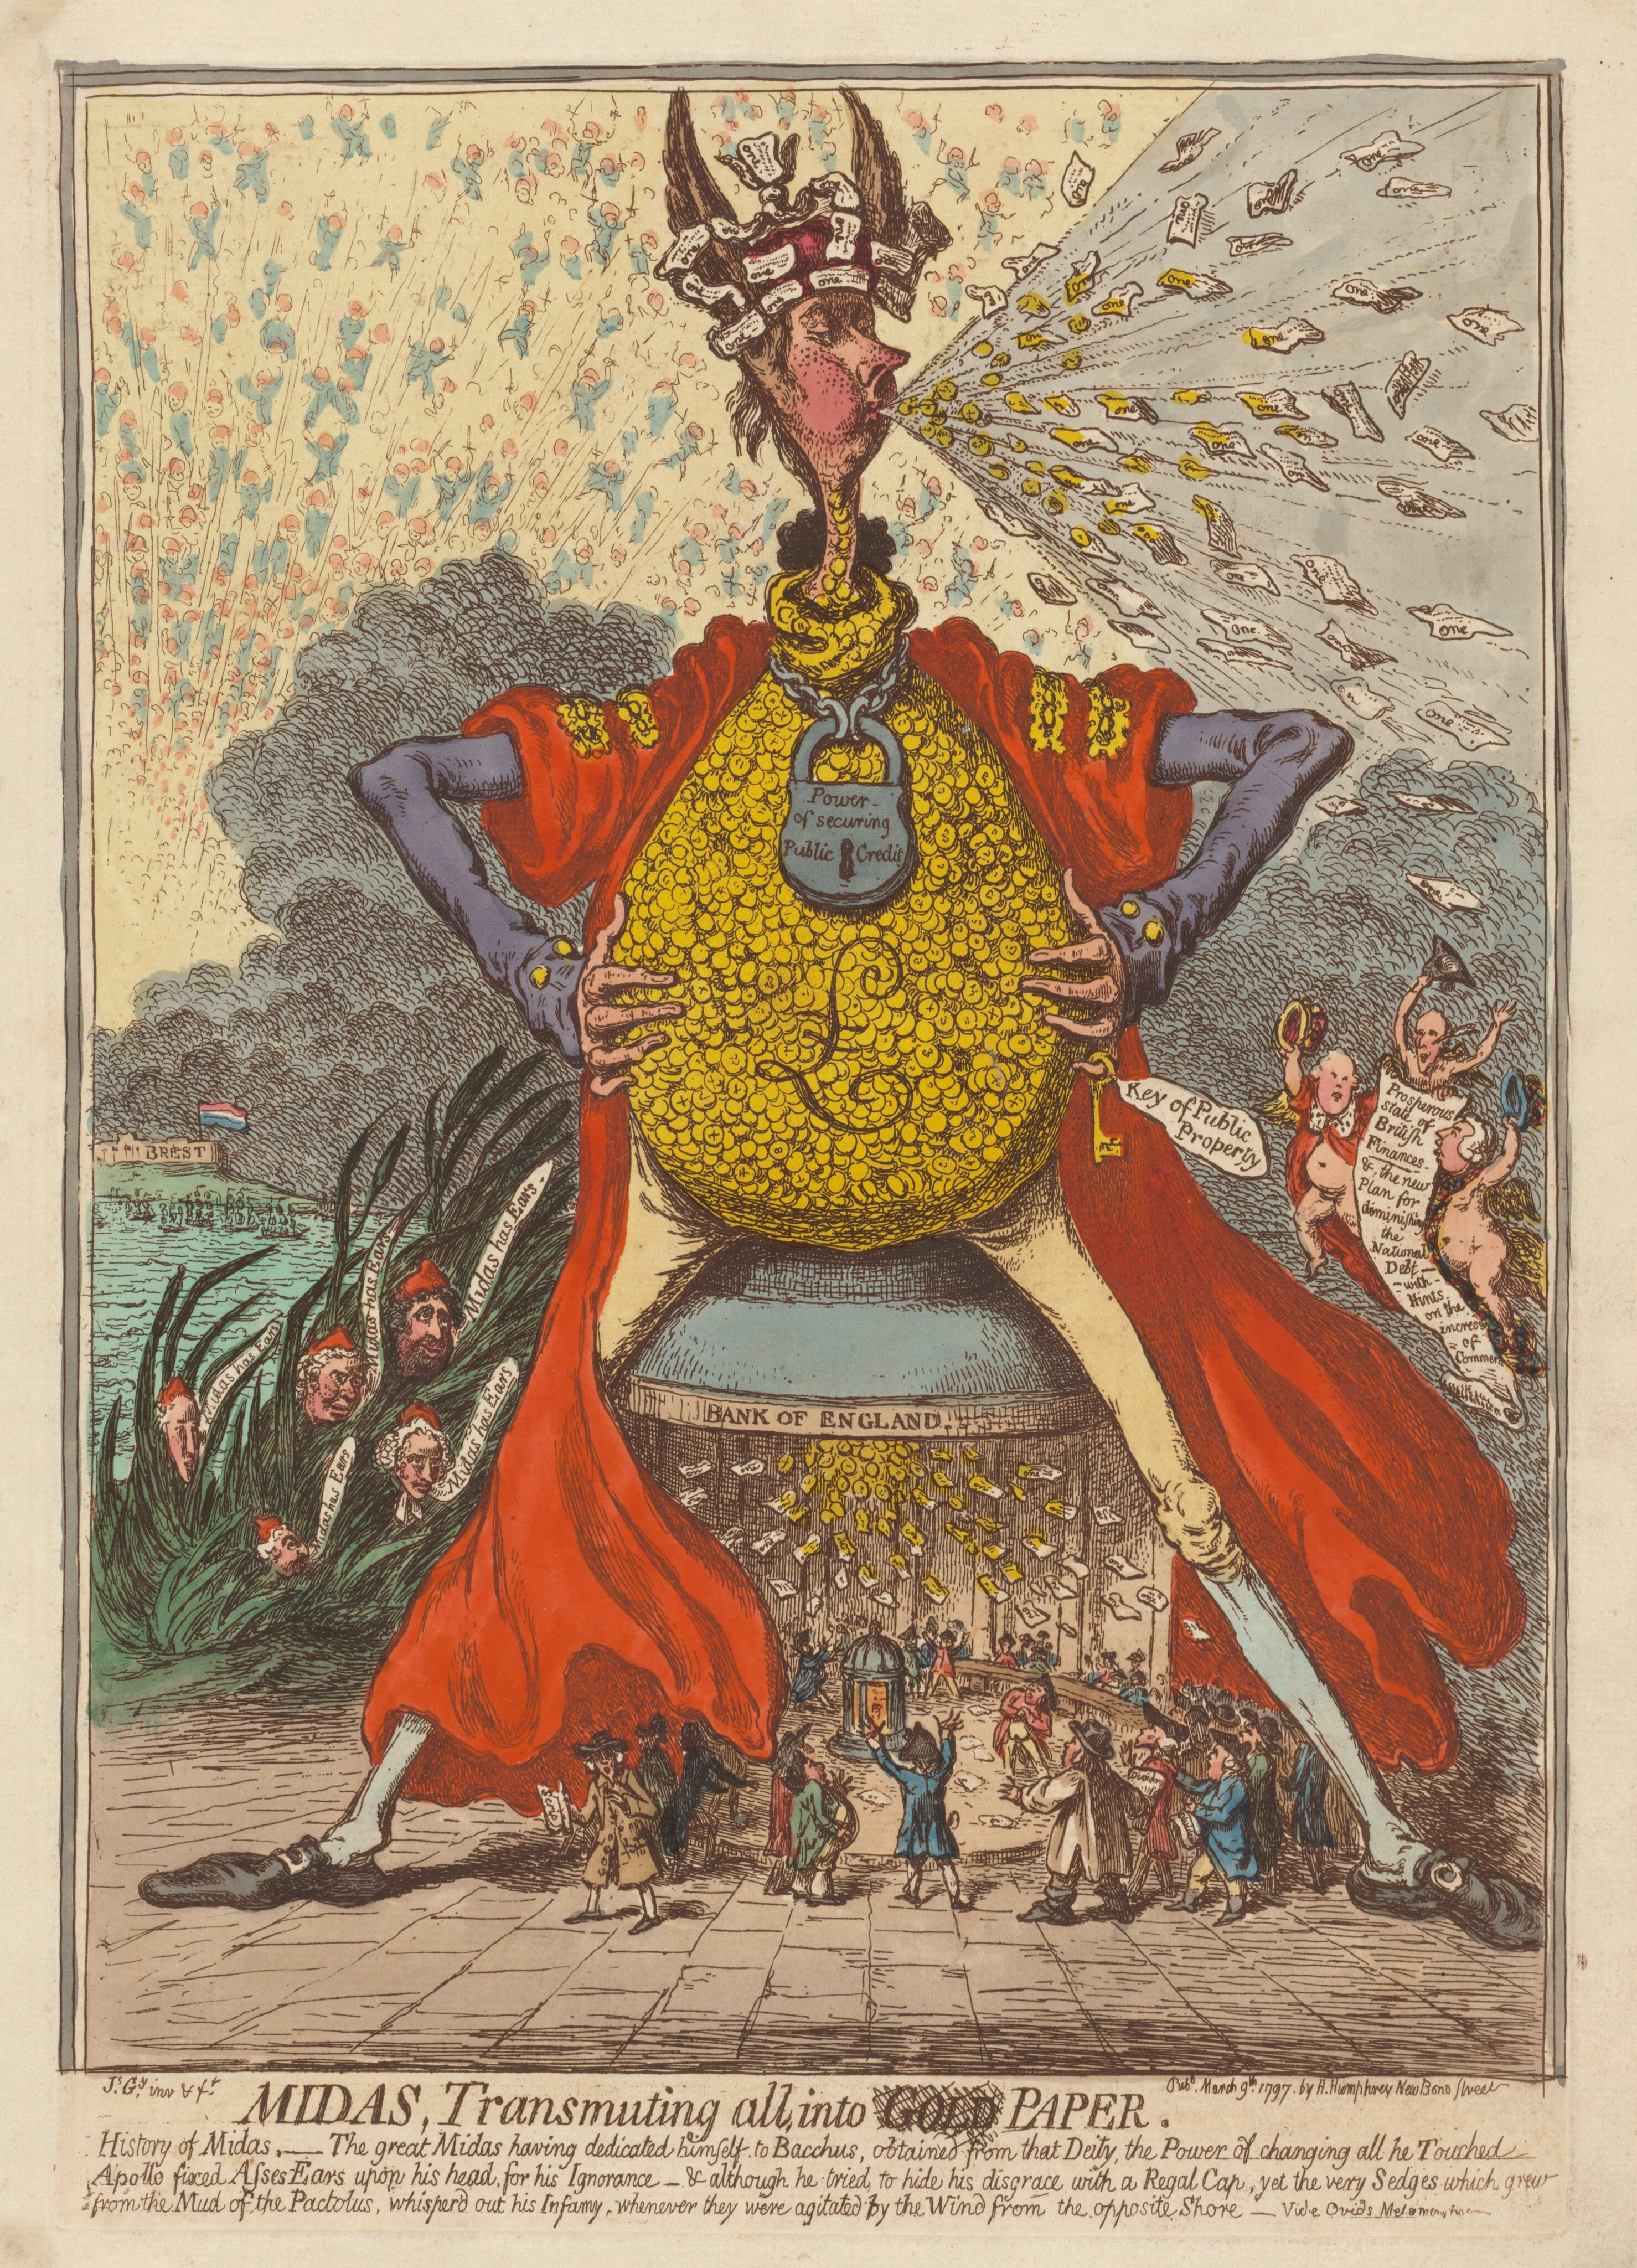 Midas, Transmuting All into Paper, 1797, by James Gillray